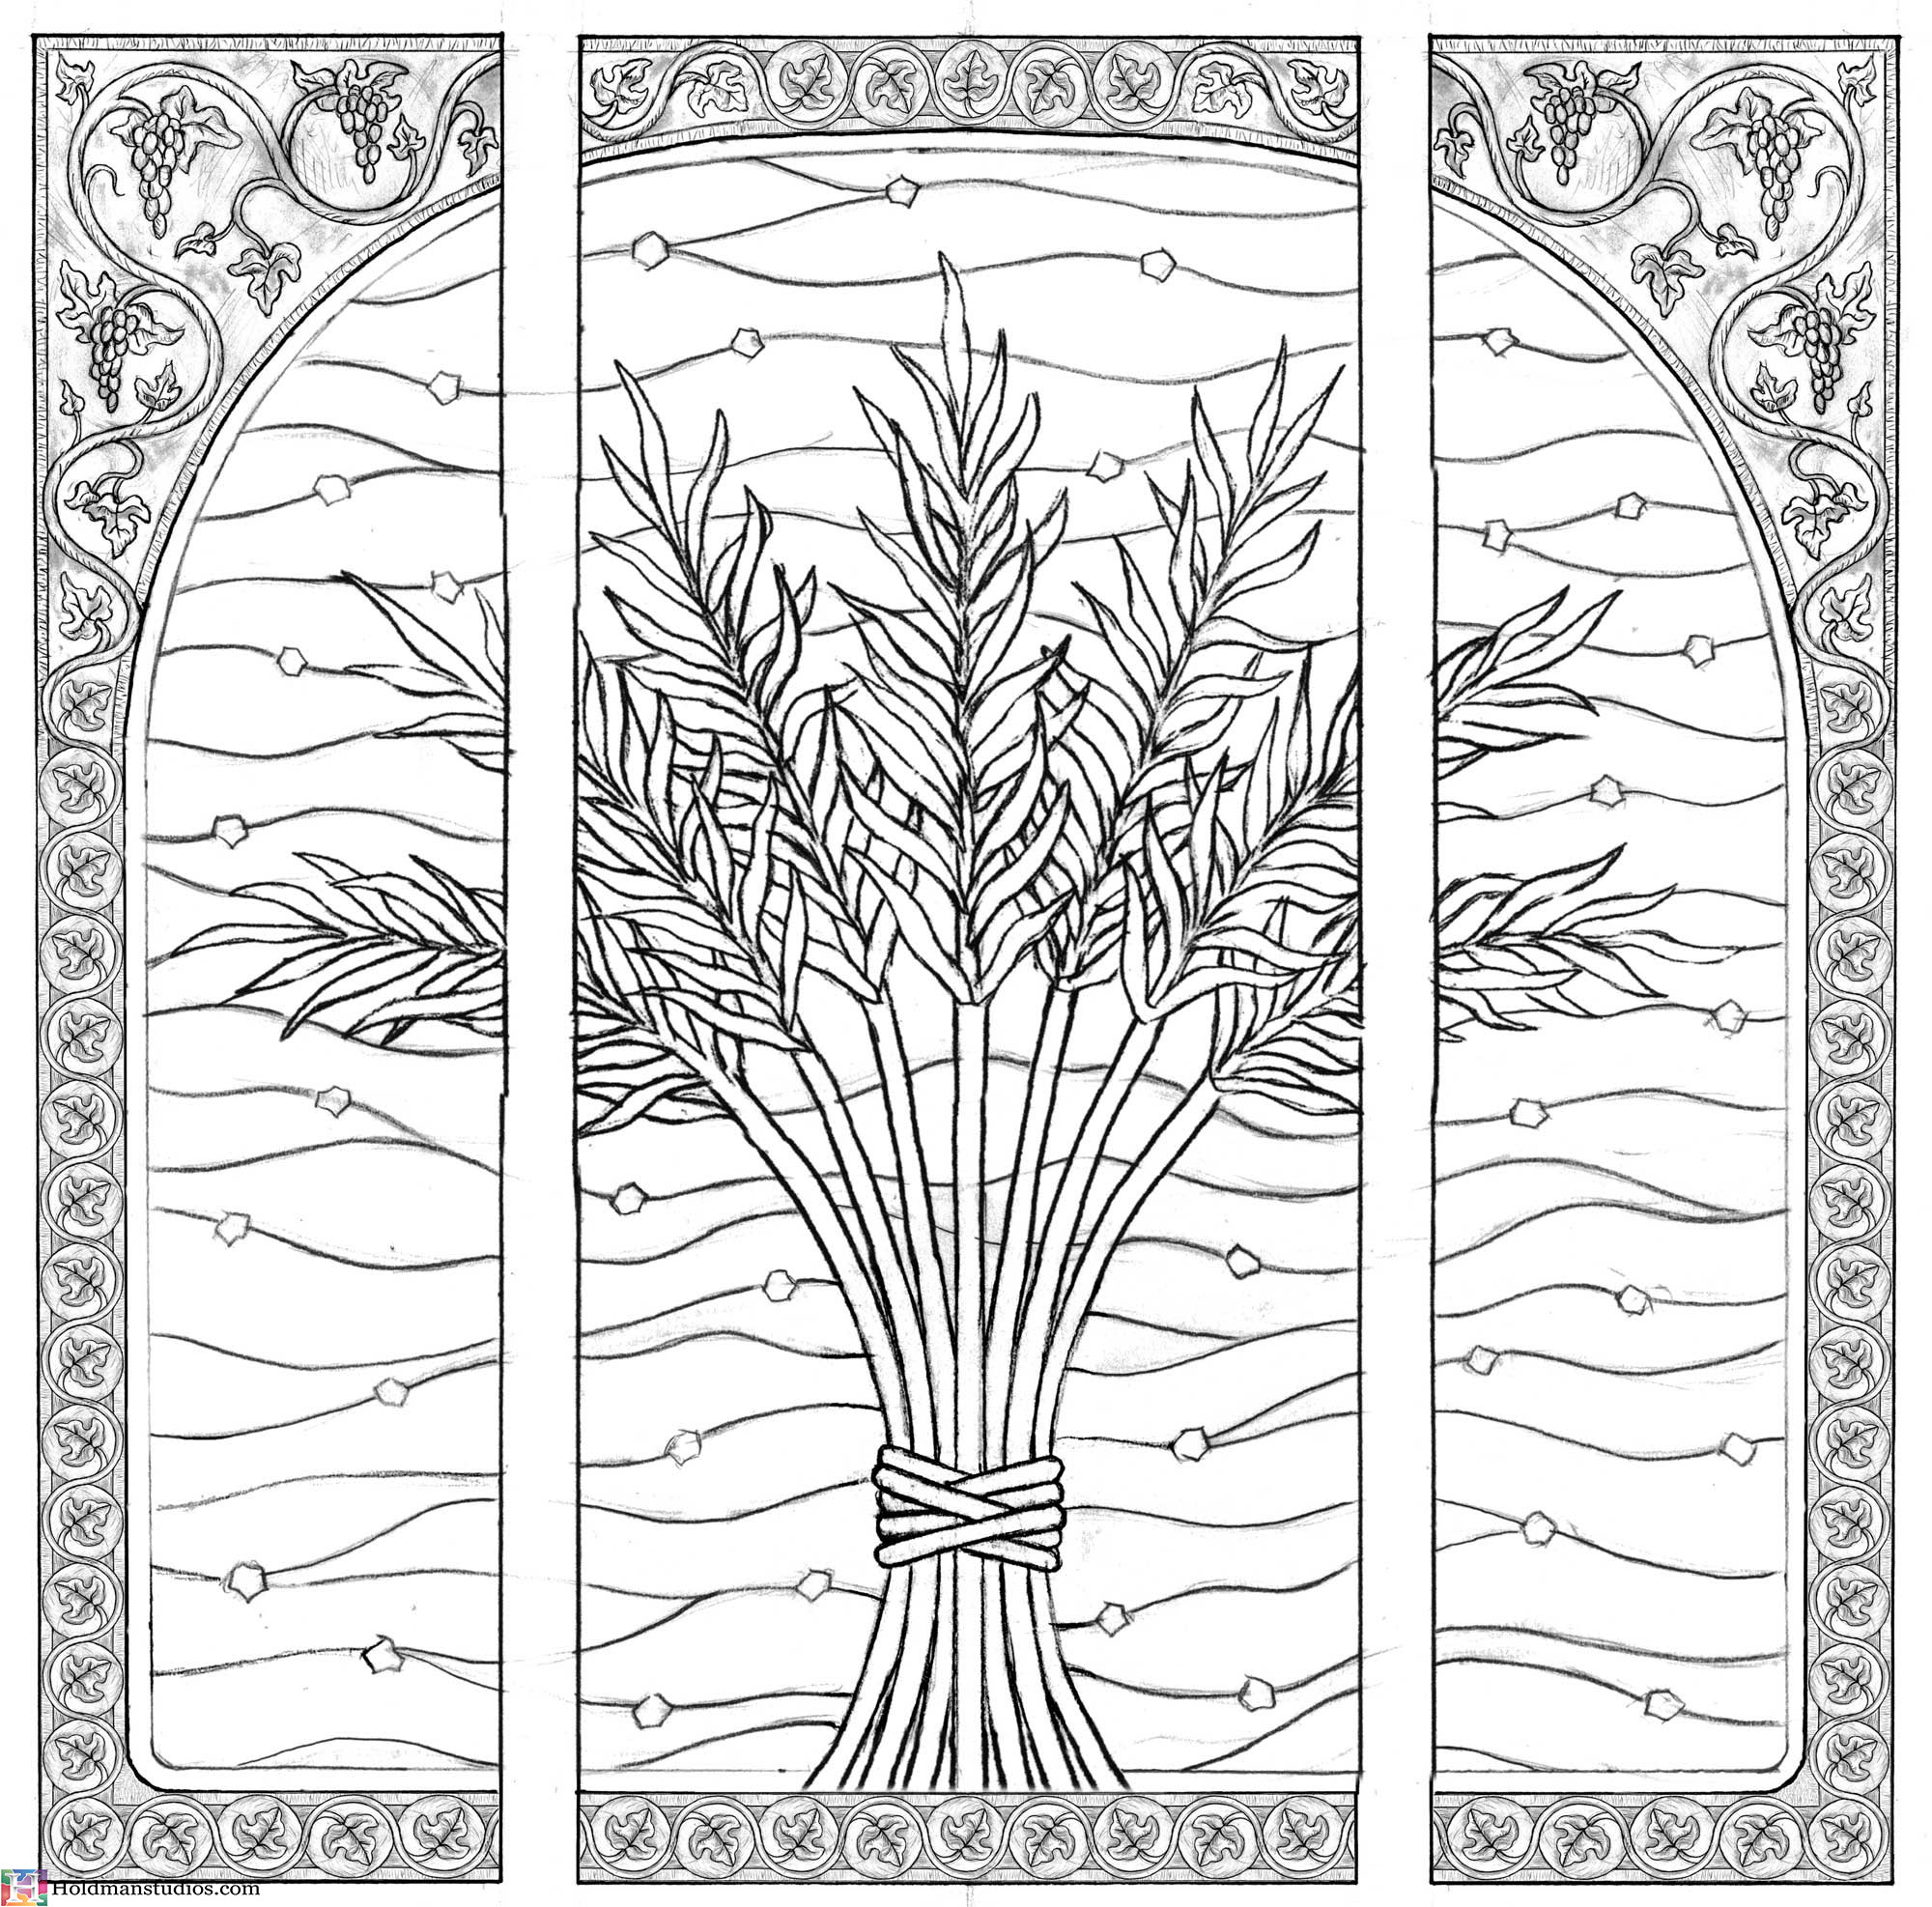 Holdman-Studio-Stained-Etched-Art-Glass-LDS-Mormon-Sao-Paulo-Brazil-Temple-Celestial Room-Grapes-Palm-Leaves-Window-Artist-Sketch.jpg